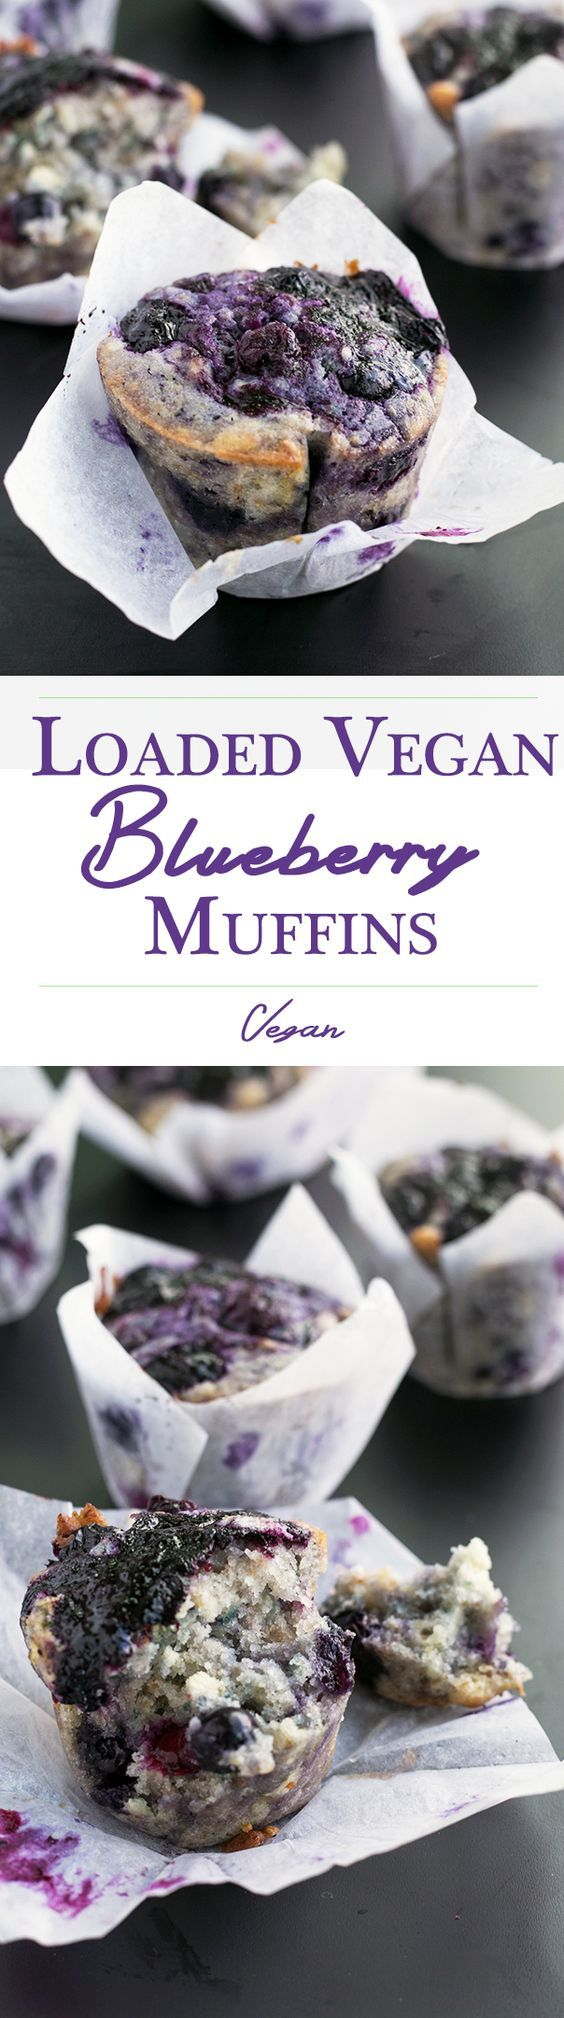 Delicious, fully loaded Vegan Blueberry Muffins. ~ vegan recipe, breakfast| healthy recipe ideas @xhealthyrecipex |: